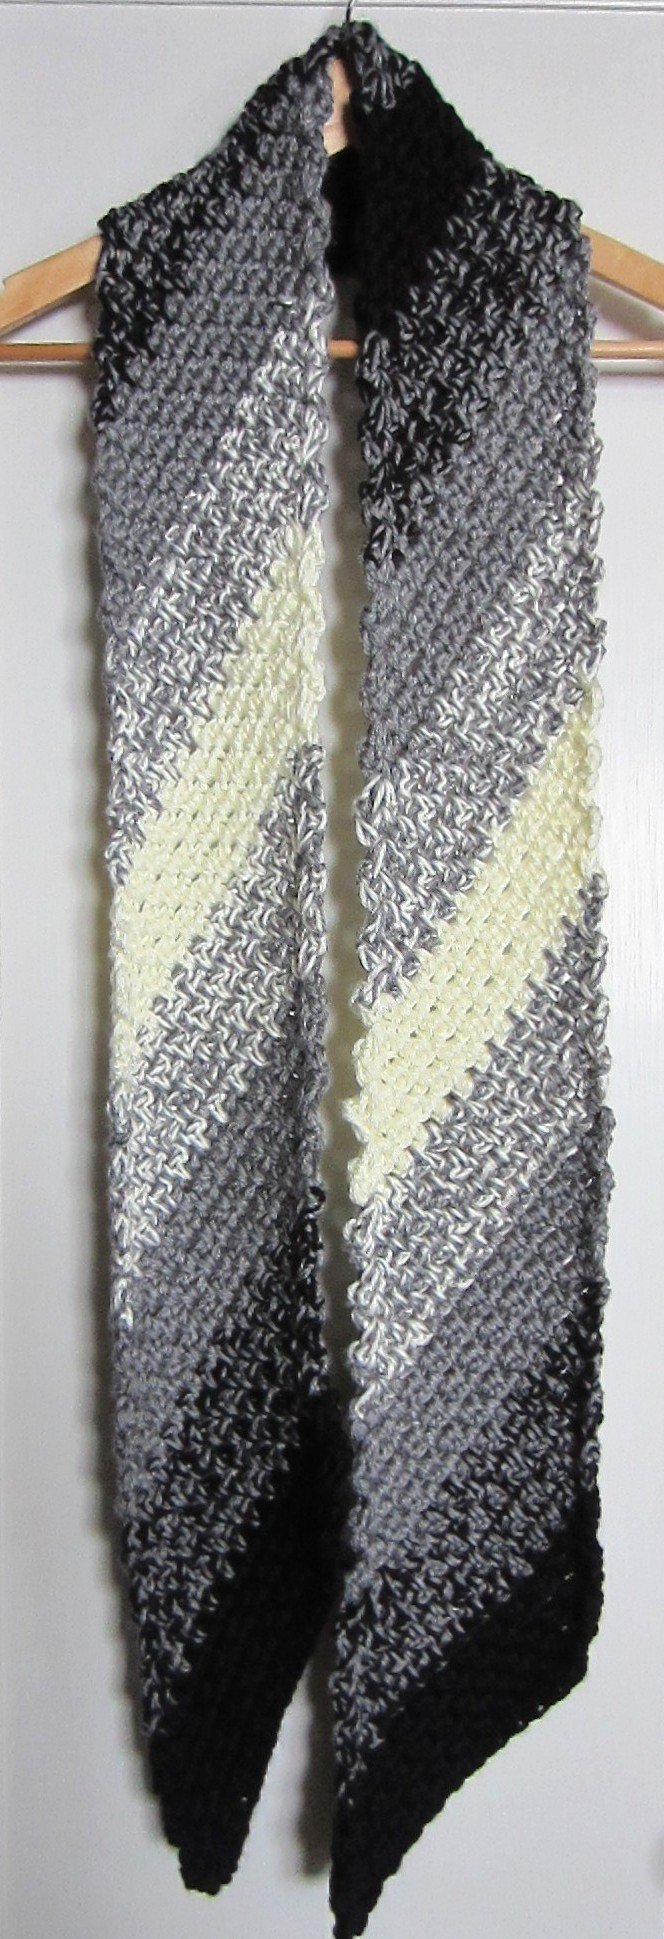 A New Scarf . . . Diagonal Crochet-In Black, Grey and White G-Ma Ellen...